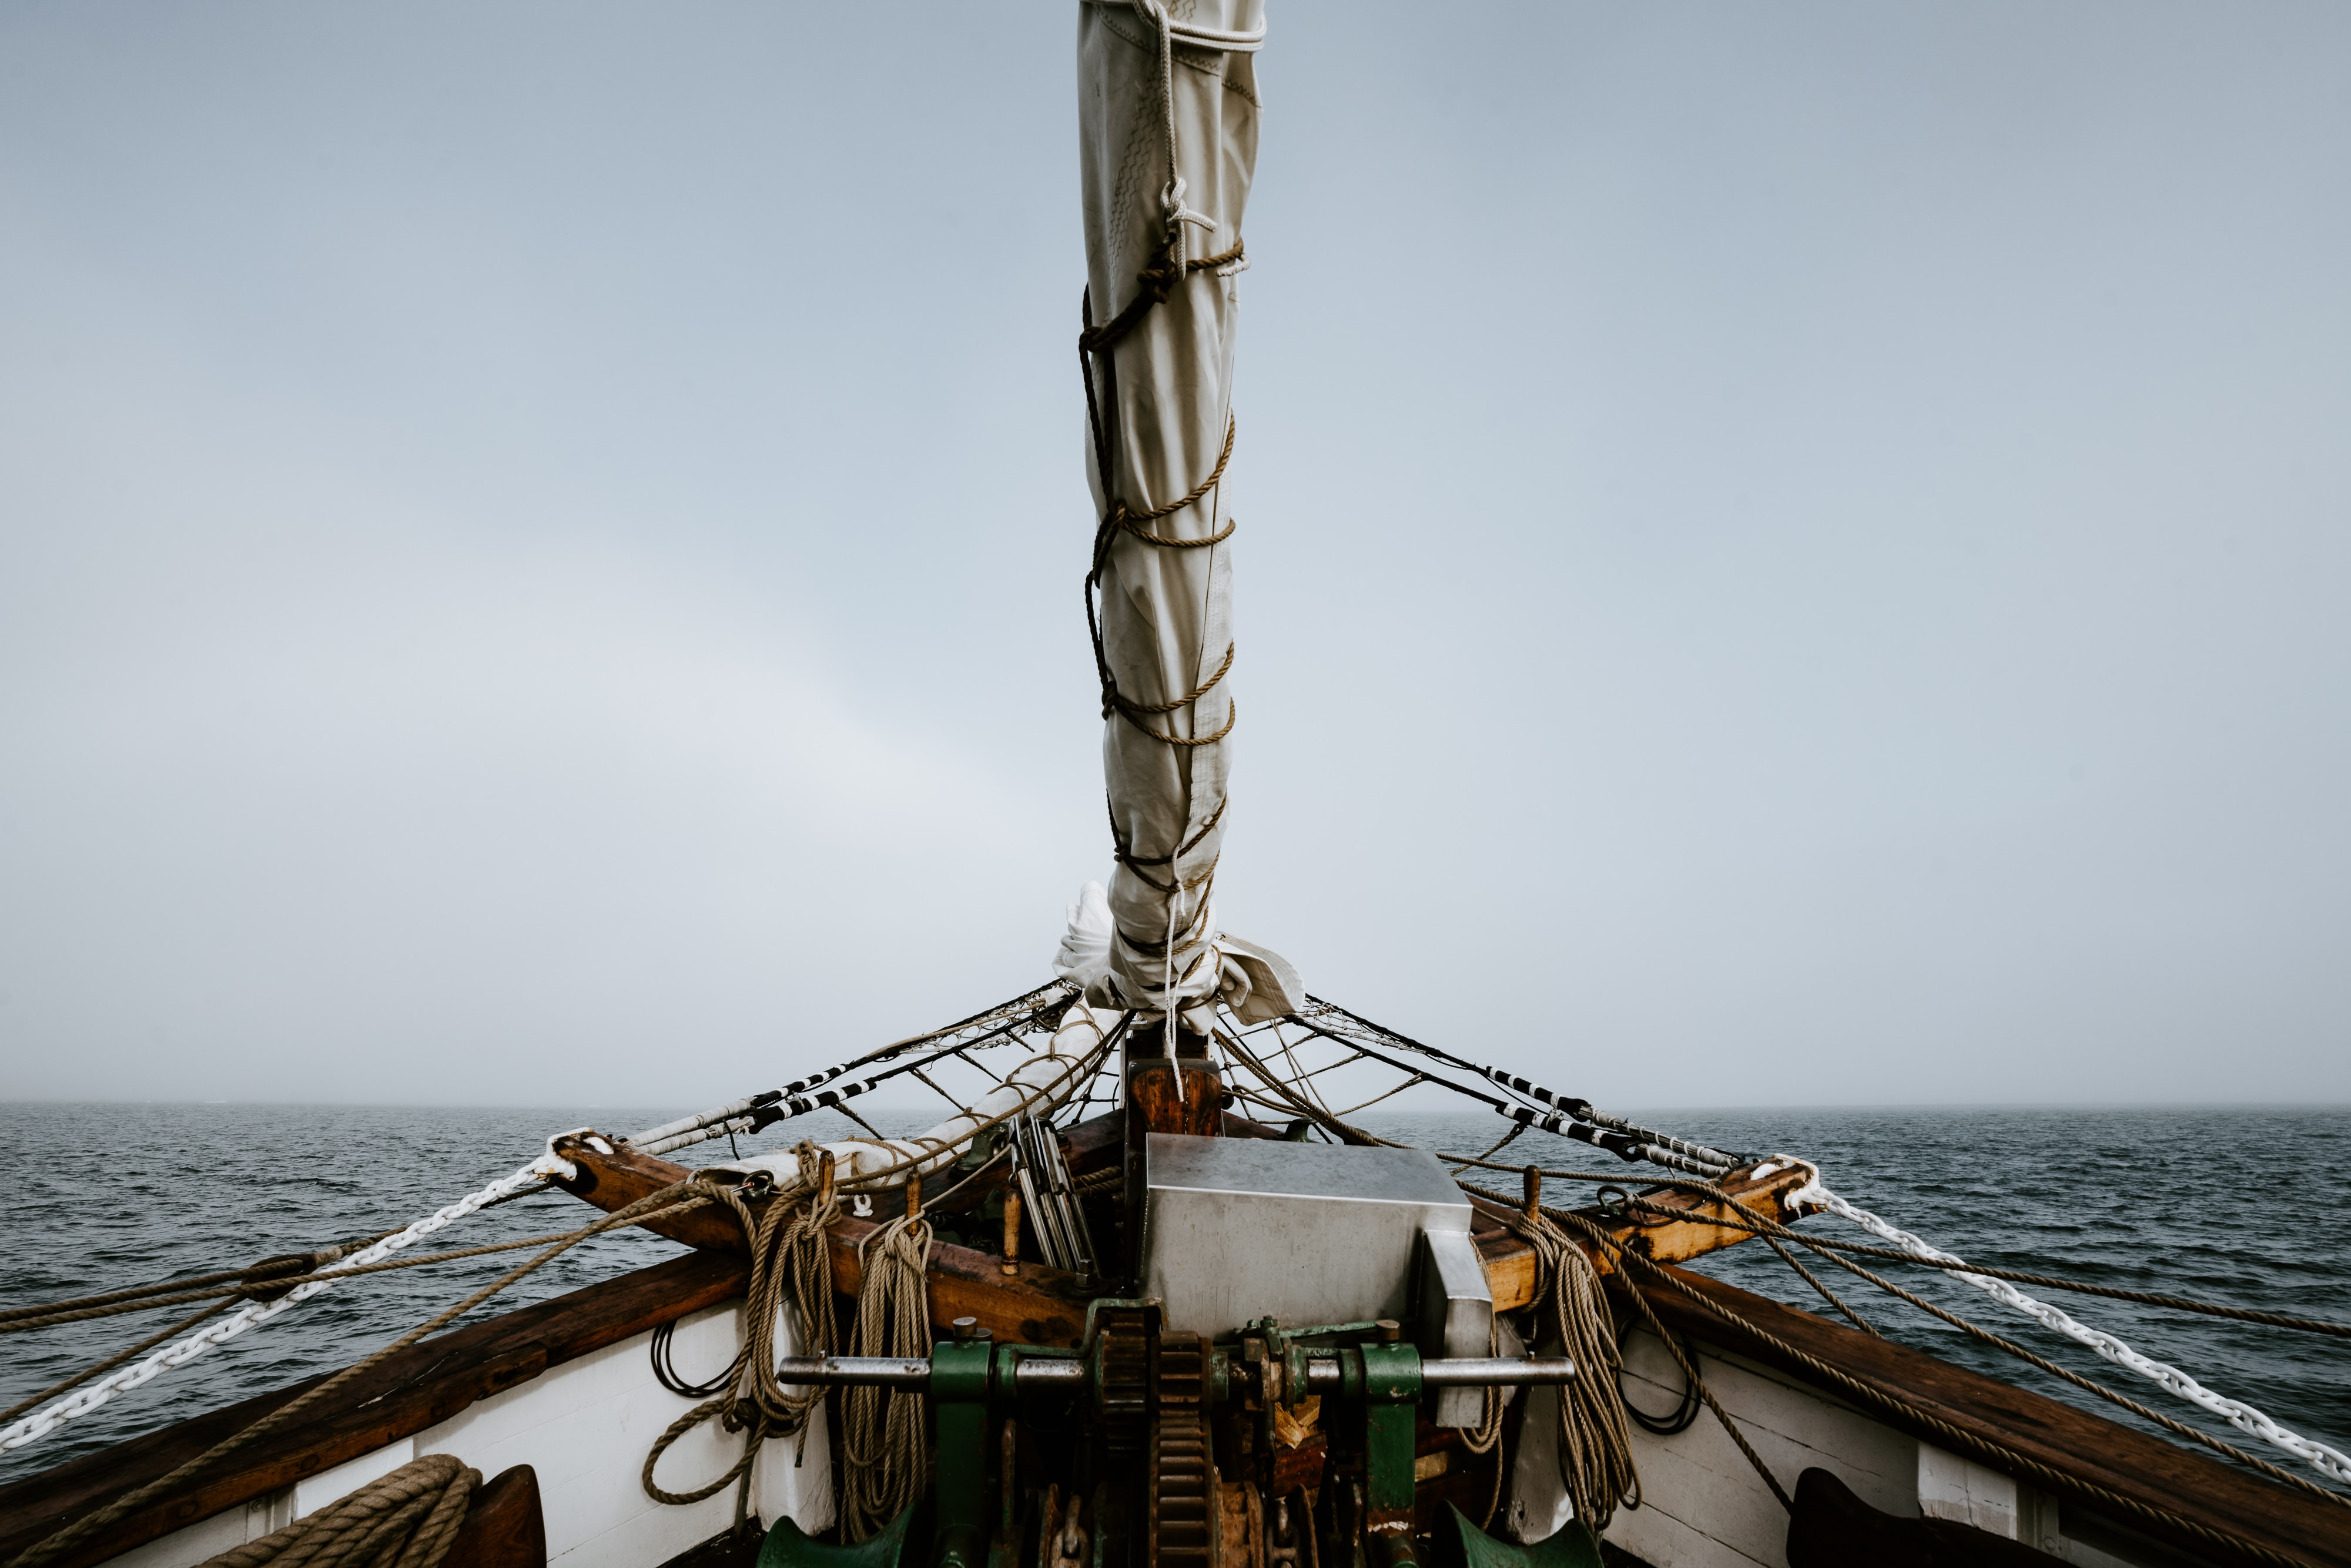 view of sea from a fishing vessel